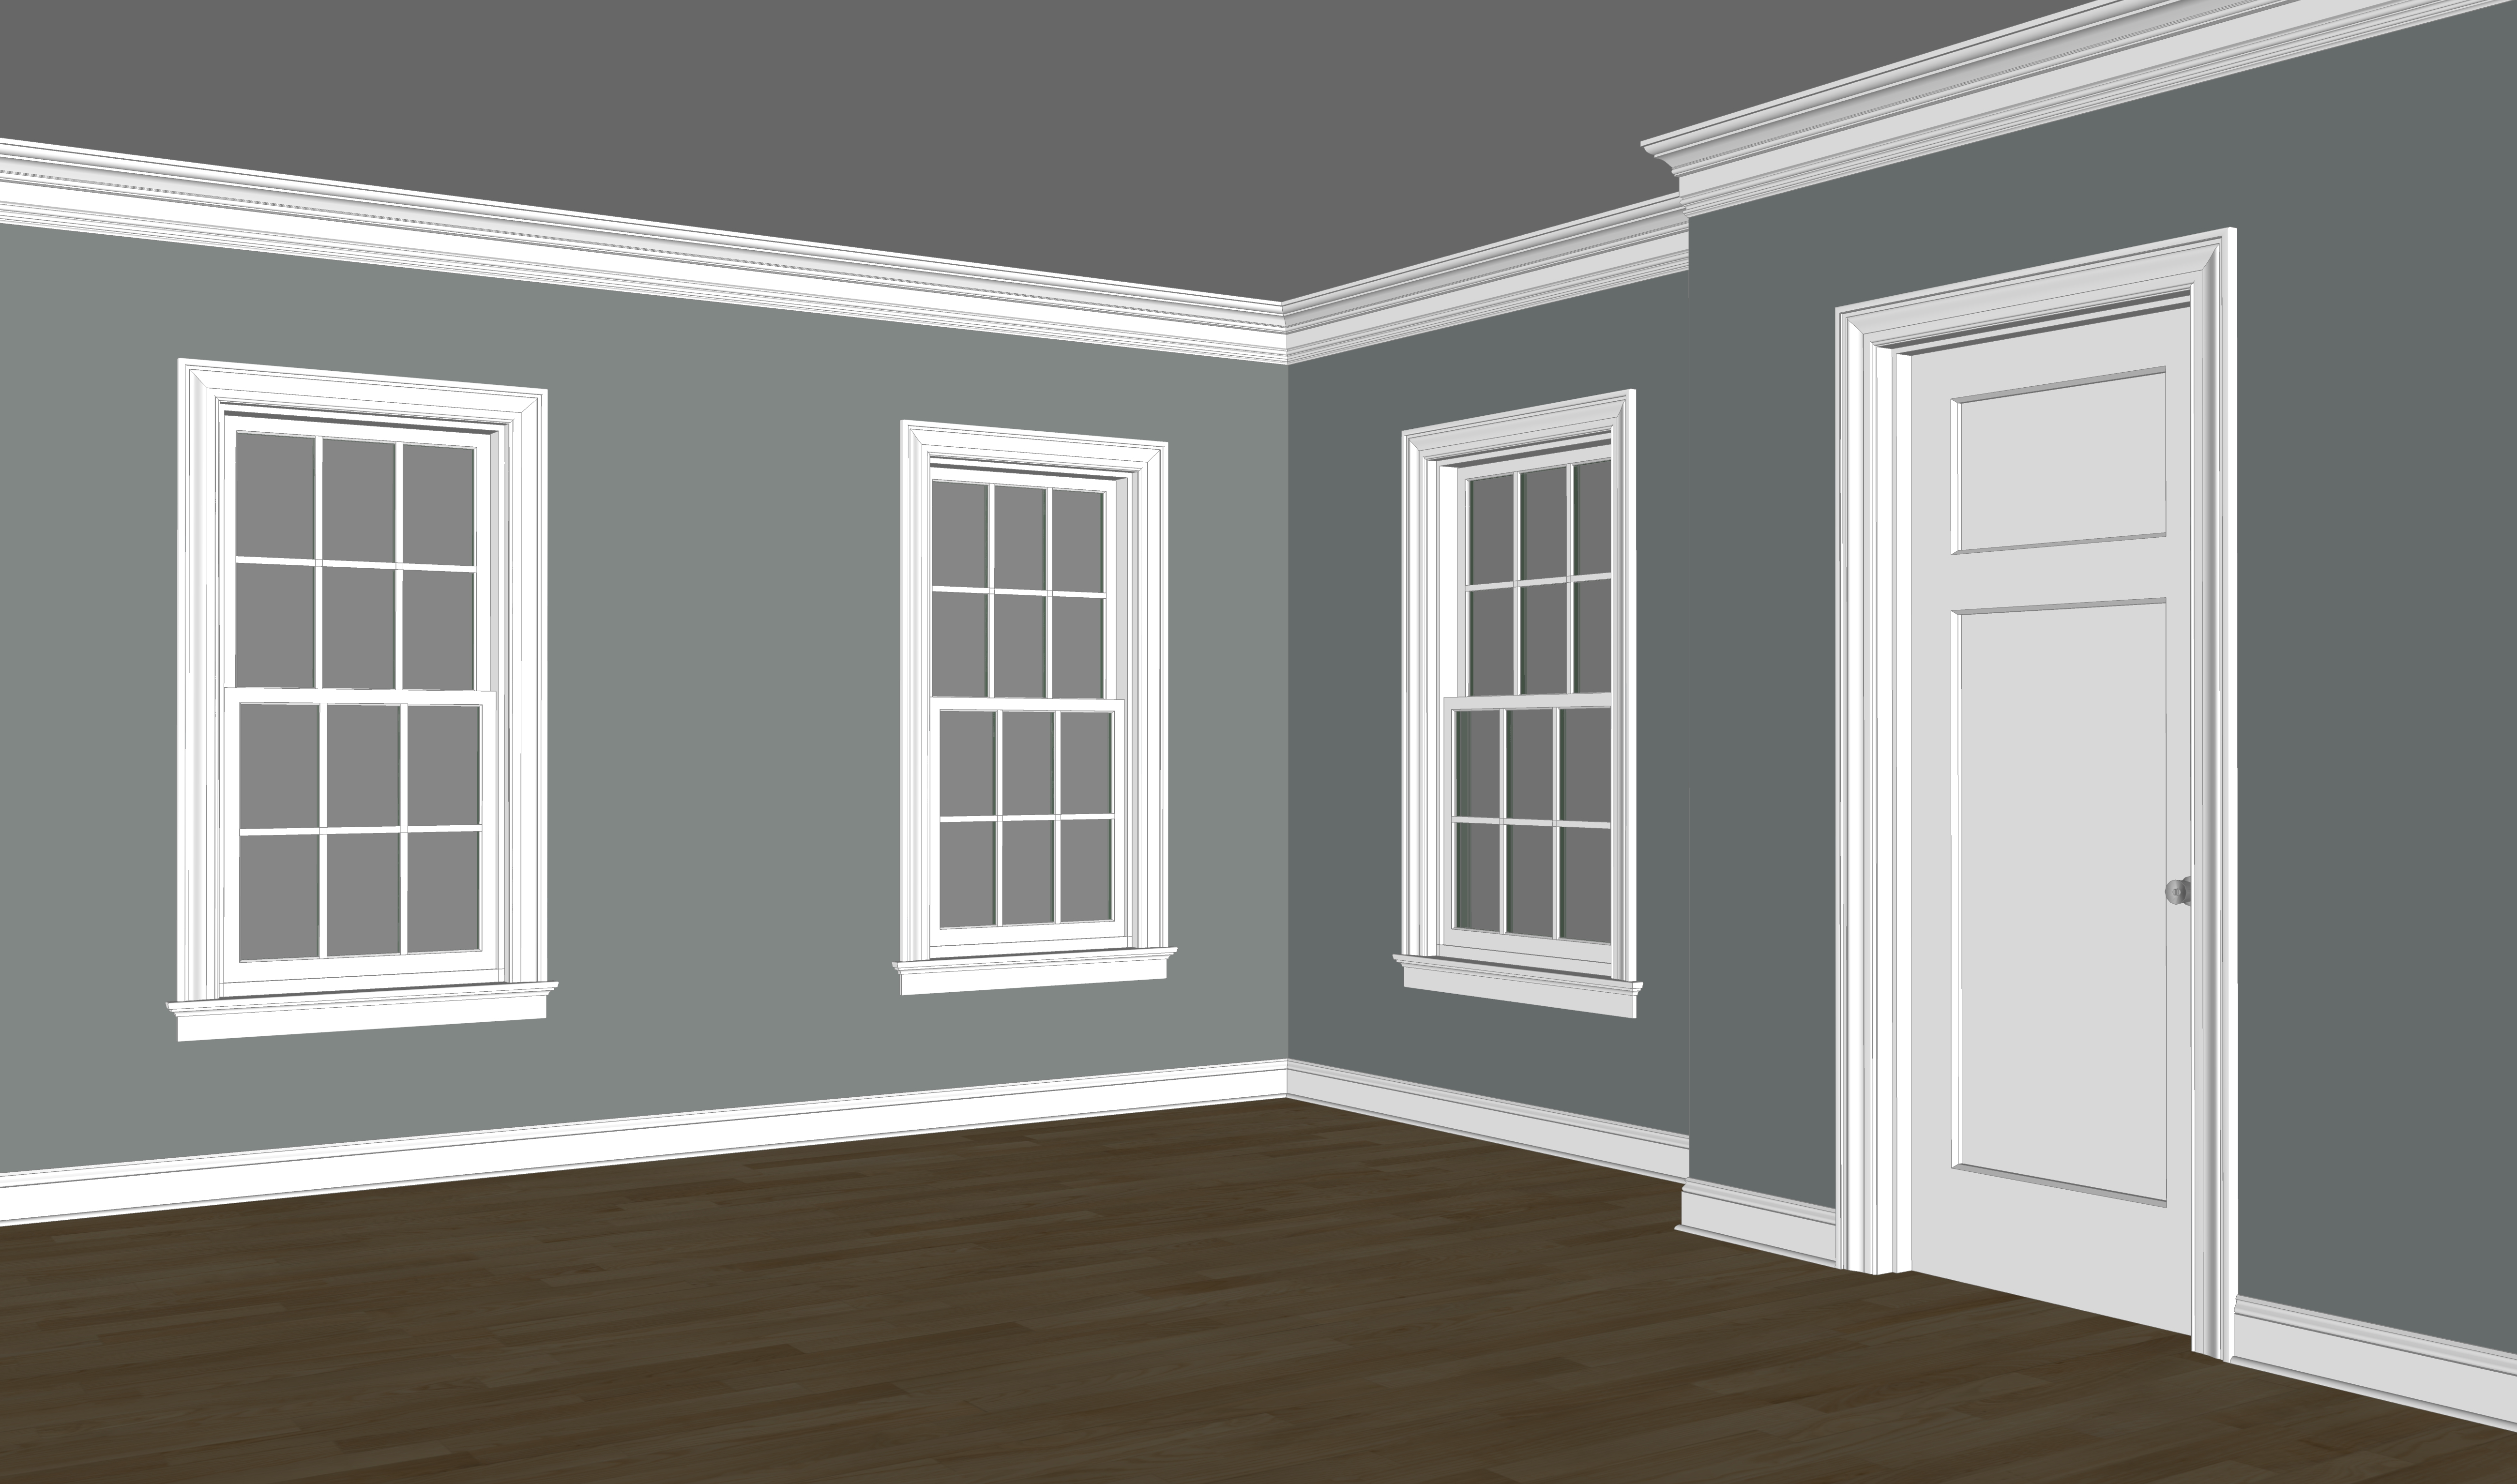 Exterior window trim colonial - Kb185 Sanitary Casing In Use